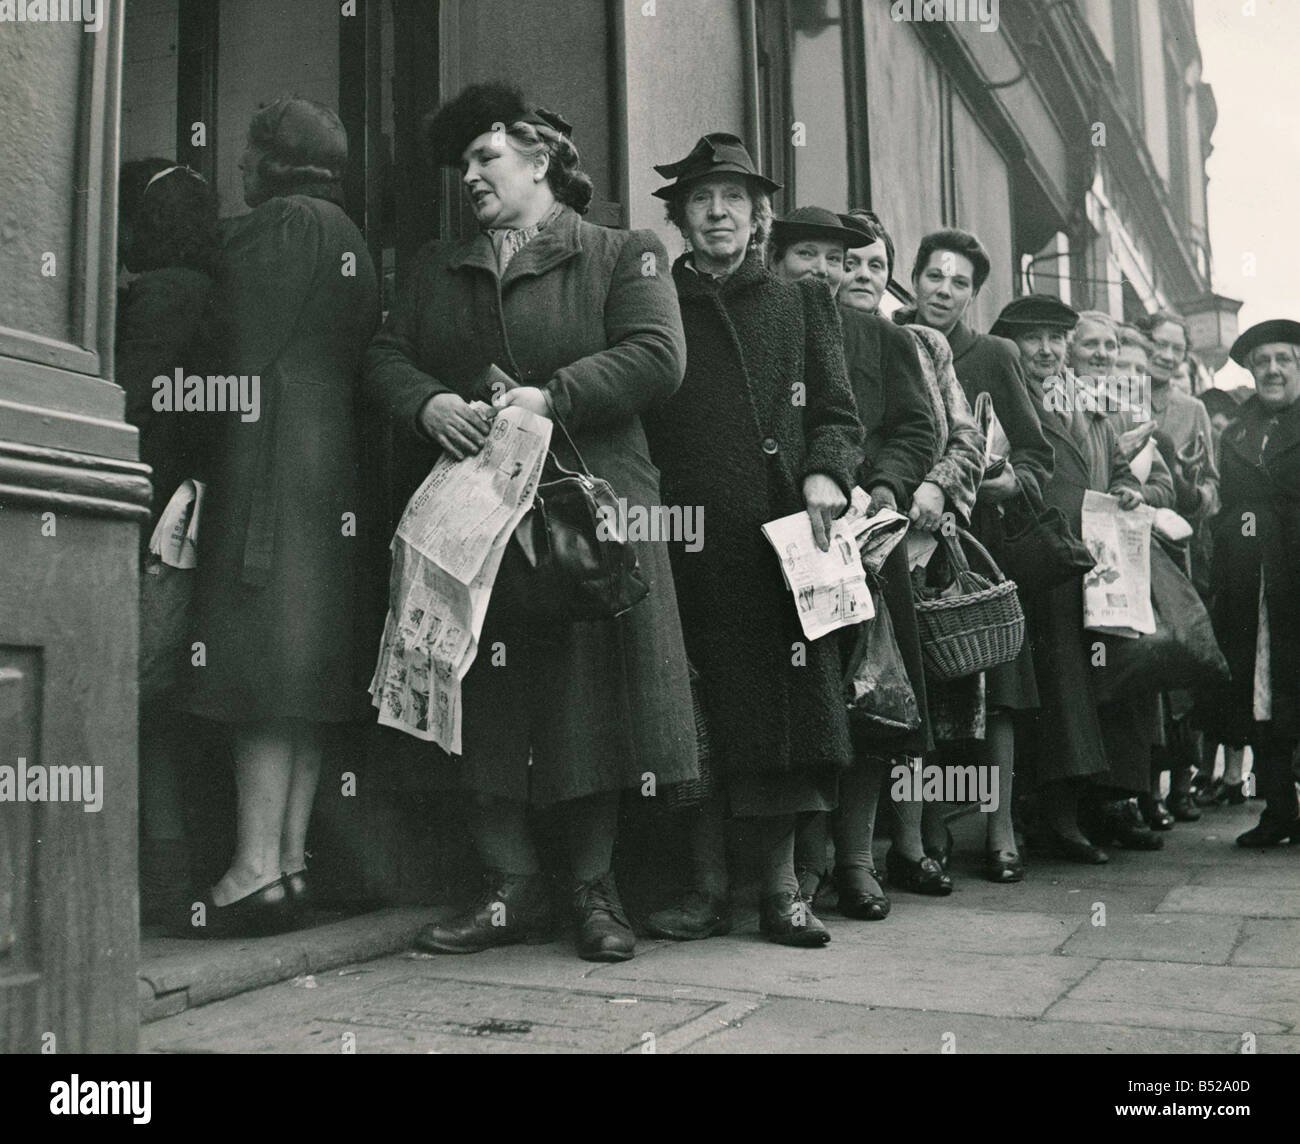 Post War Food Rationing During the Second World War 1939 45 there were a lot of shortages of essential foodstuffs - Stock Image